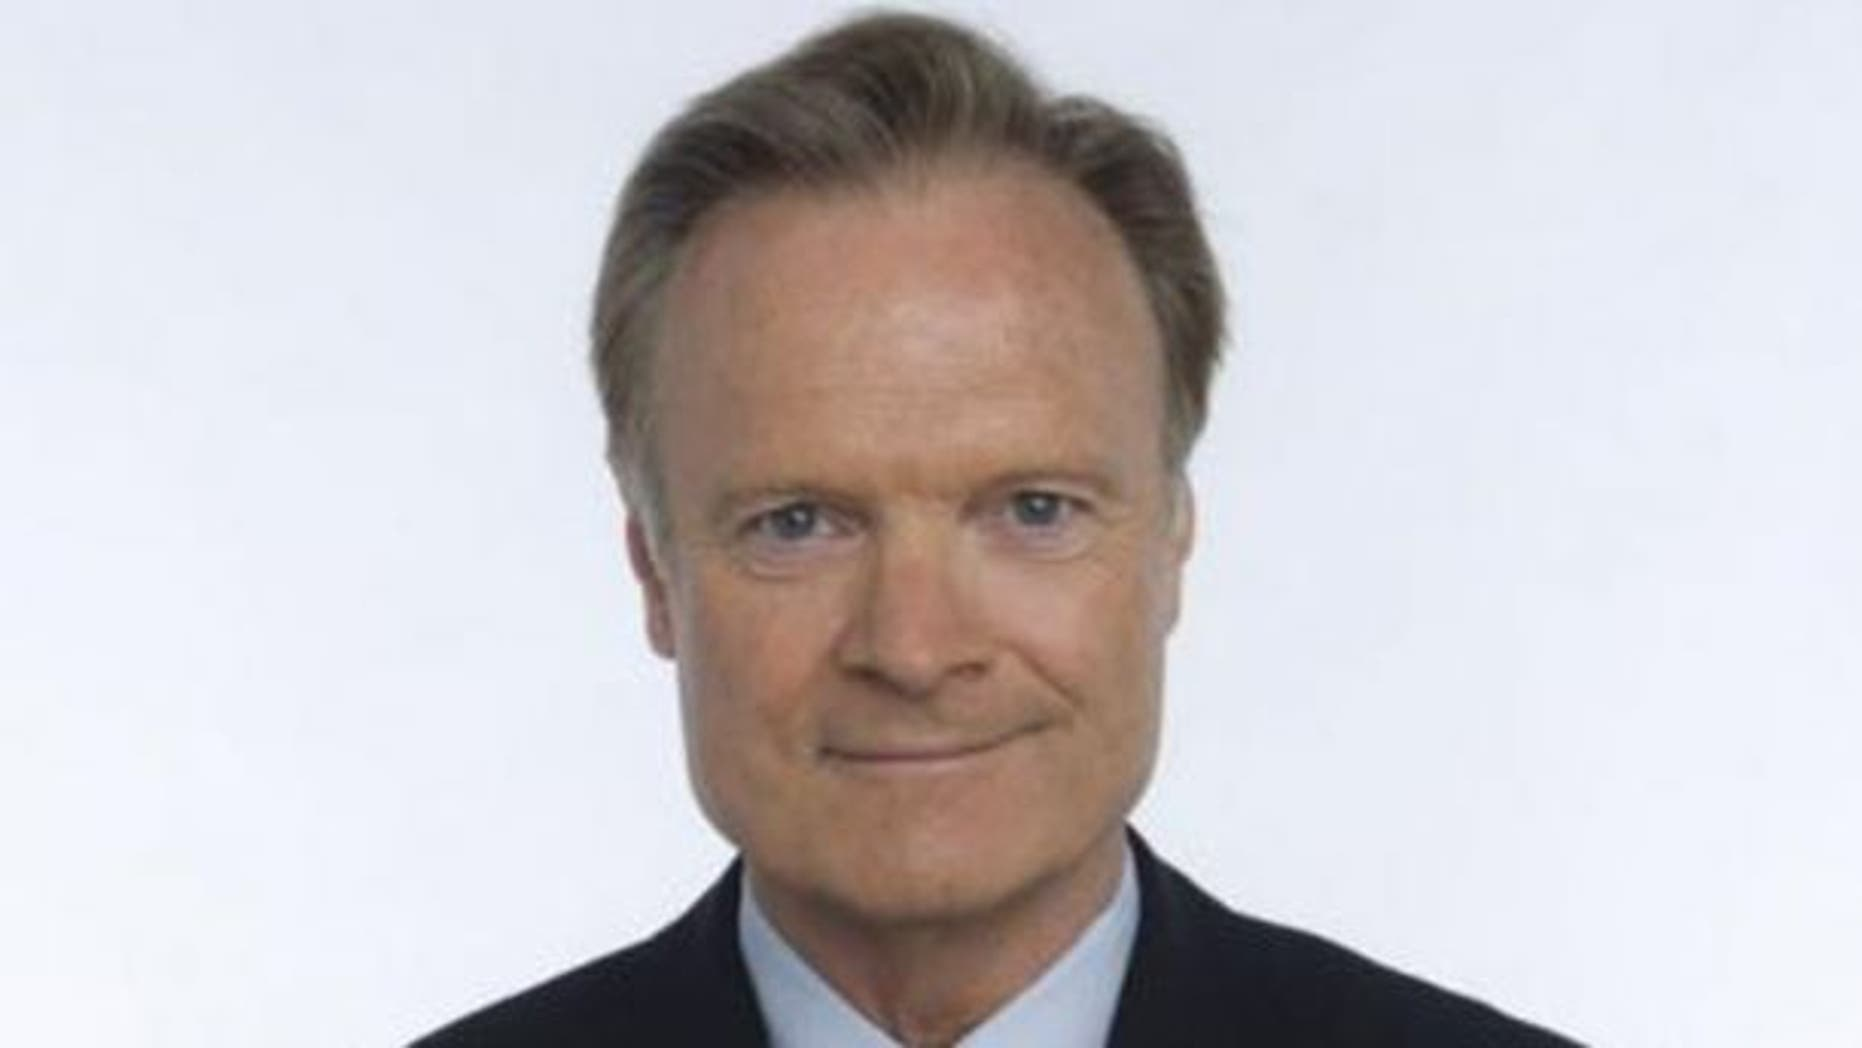 MSNBC host Lawrence O'Donnell in an undated photo.